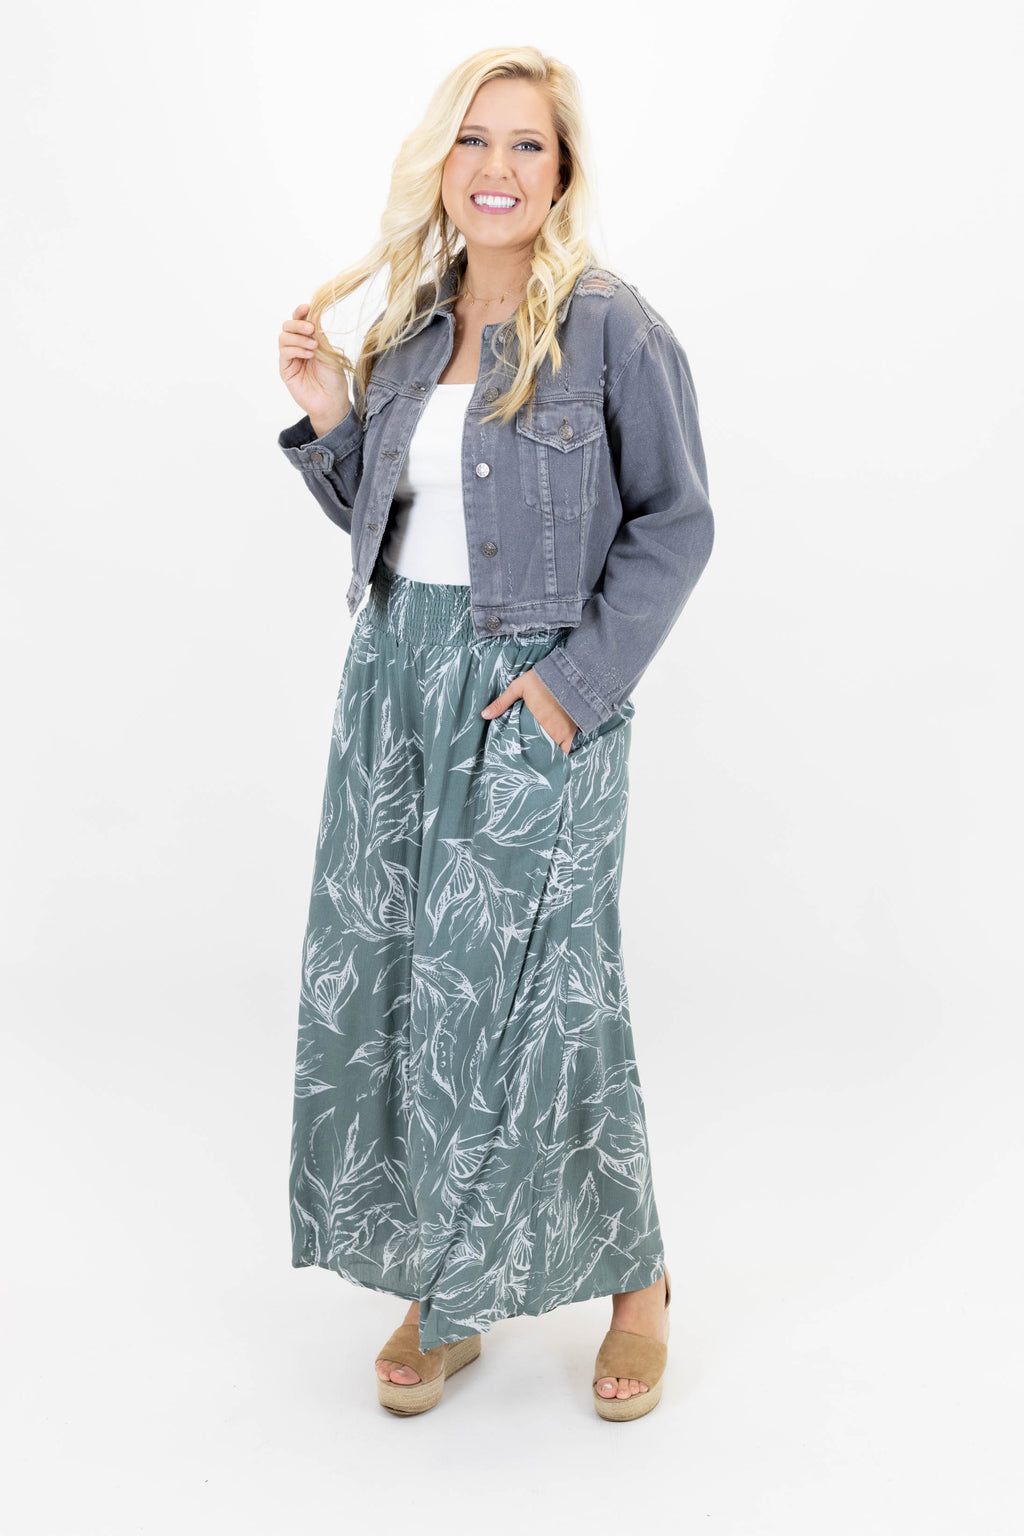 Palazzo Pants with Elastic Waistband and Earthy, Floral Pattern